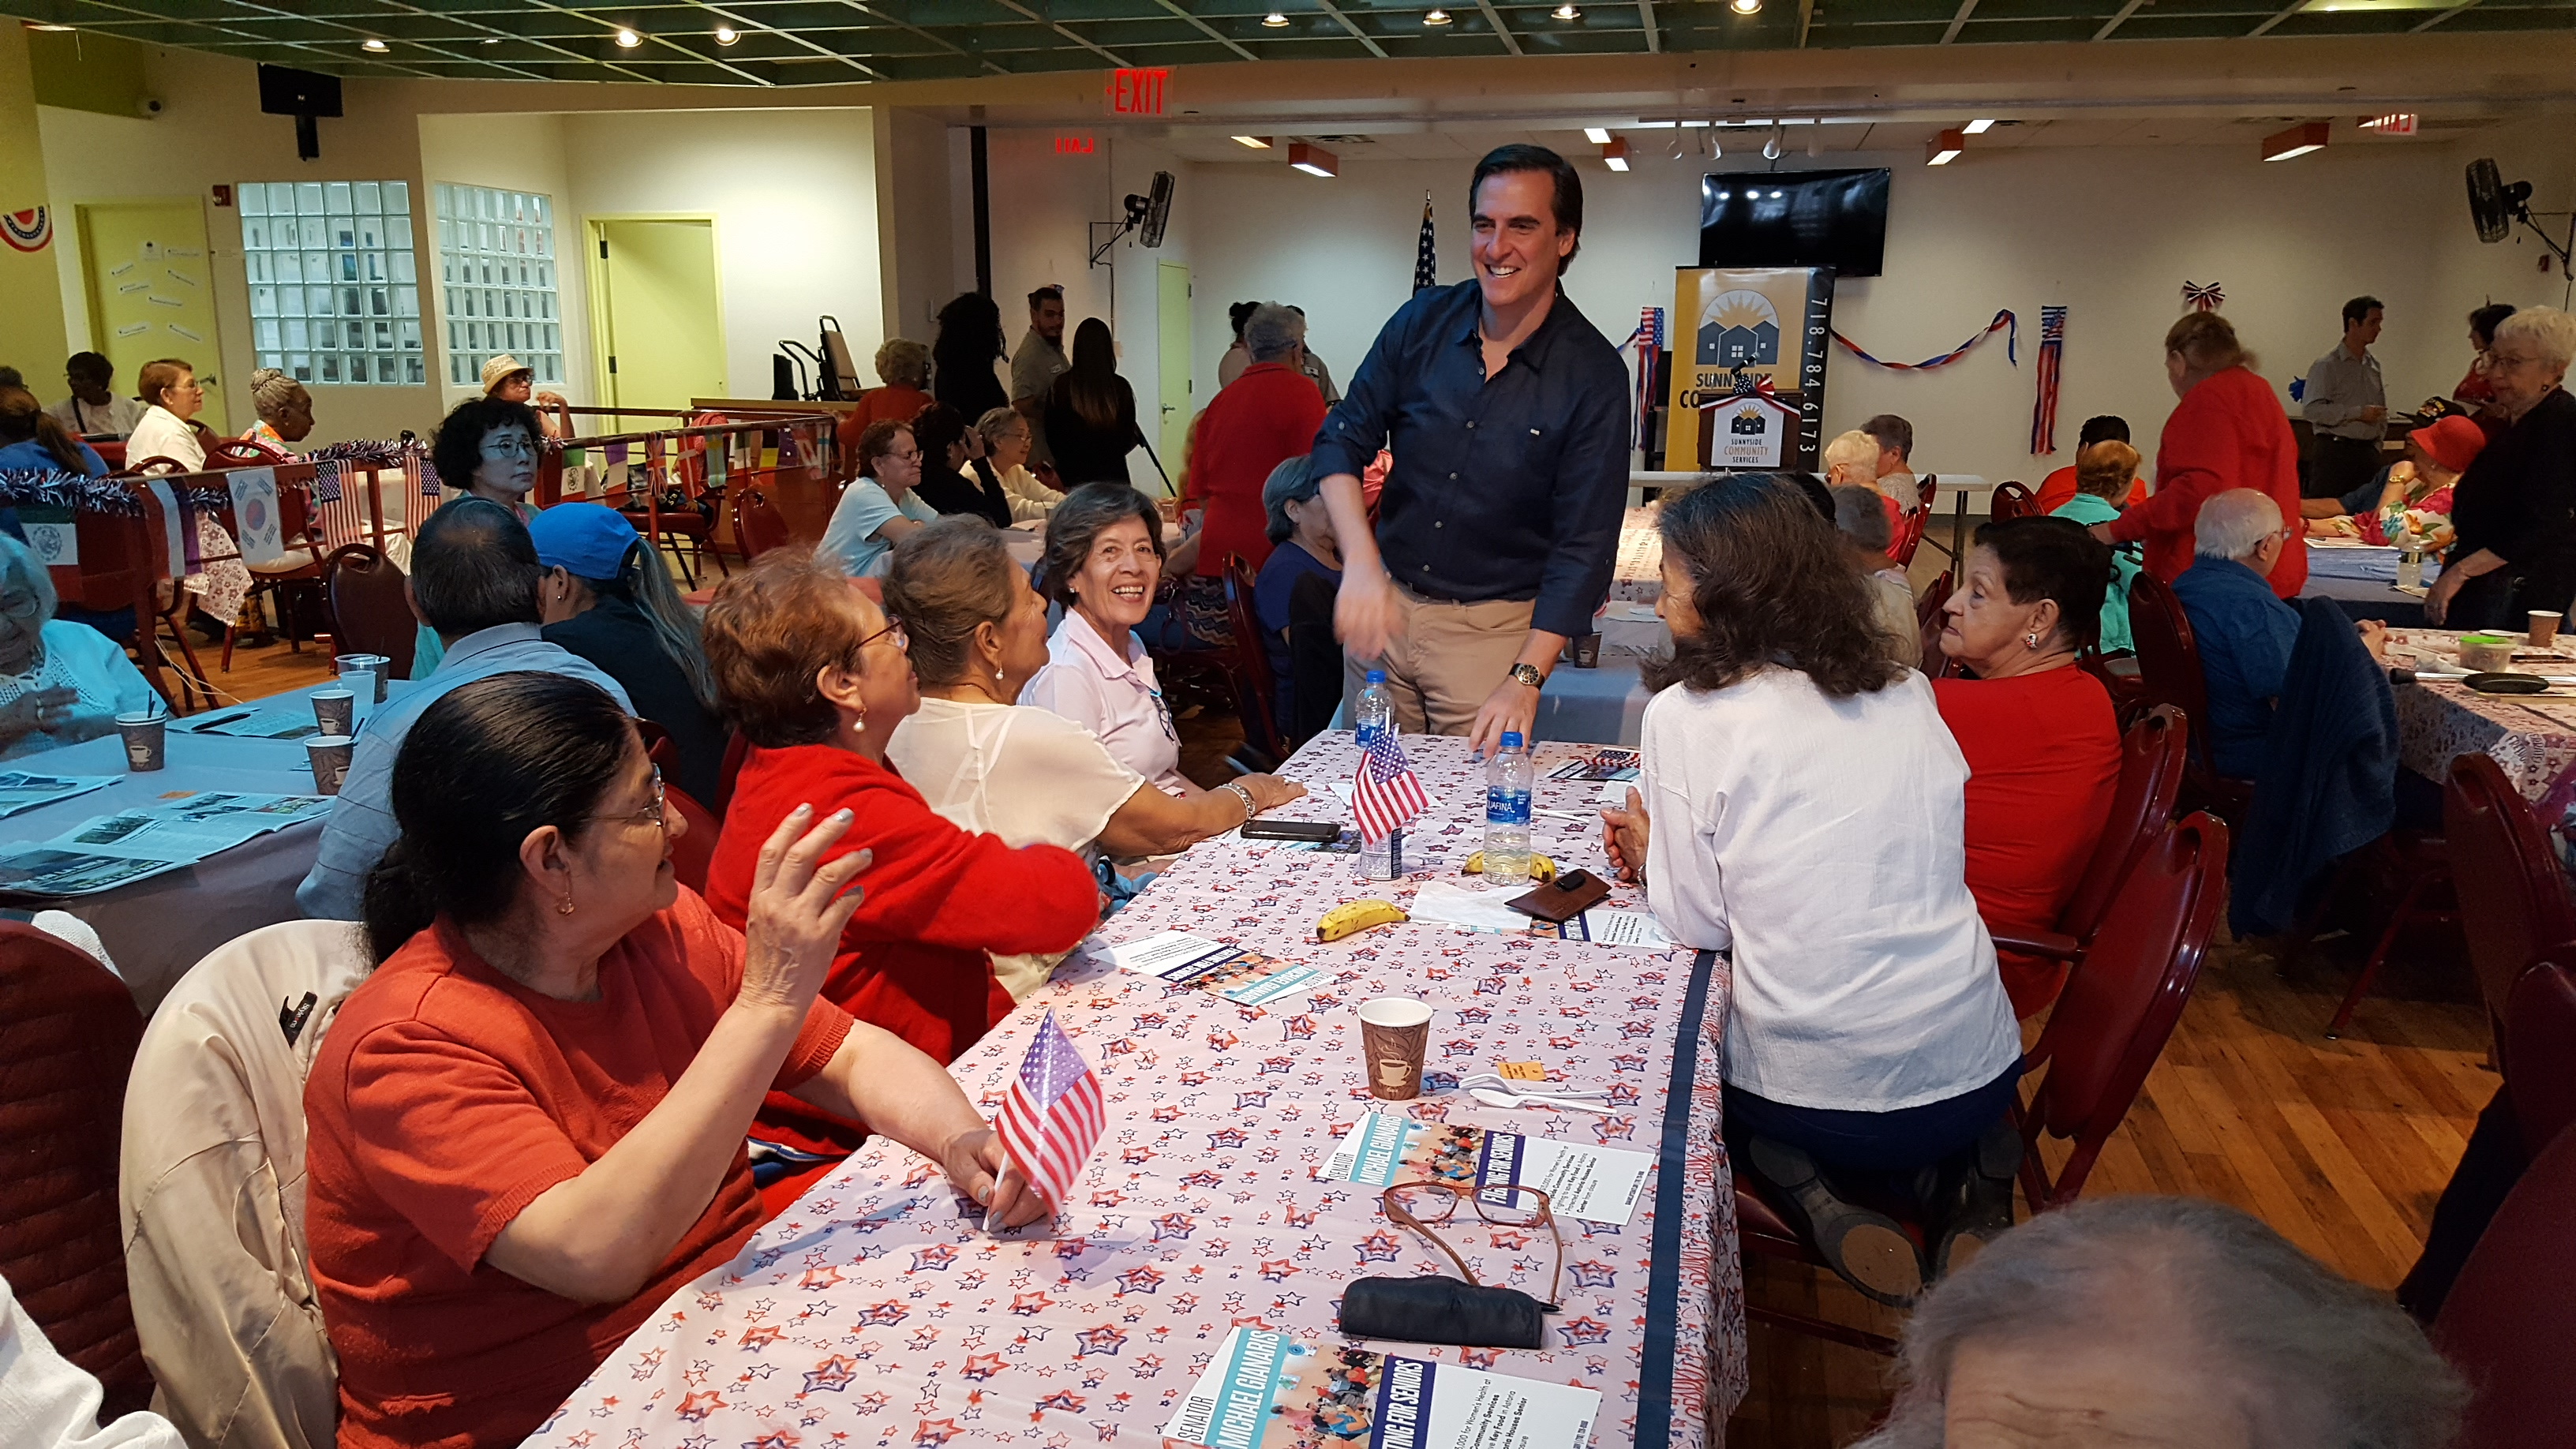 Senator Gianaris at Sunnyside Community Services, July 2019